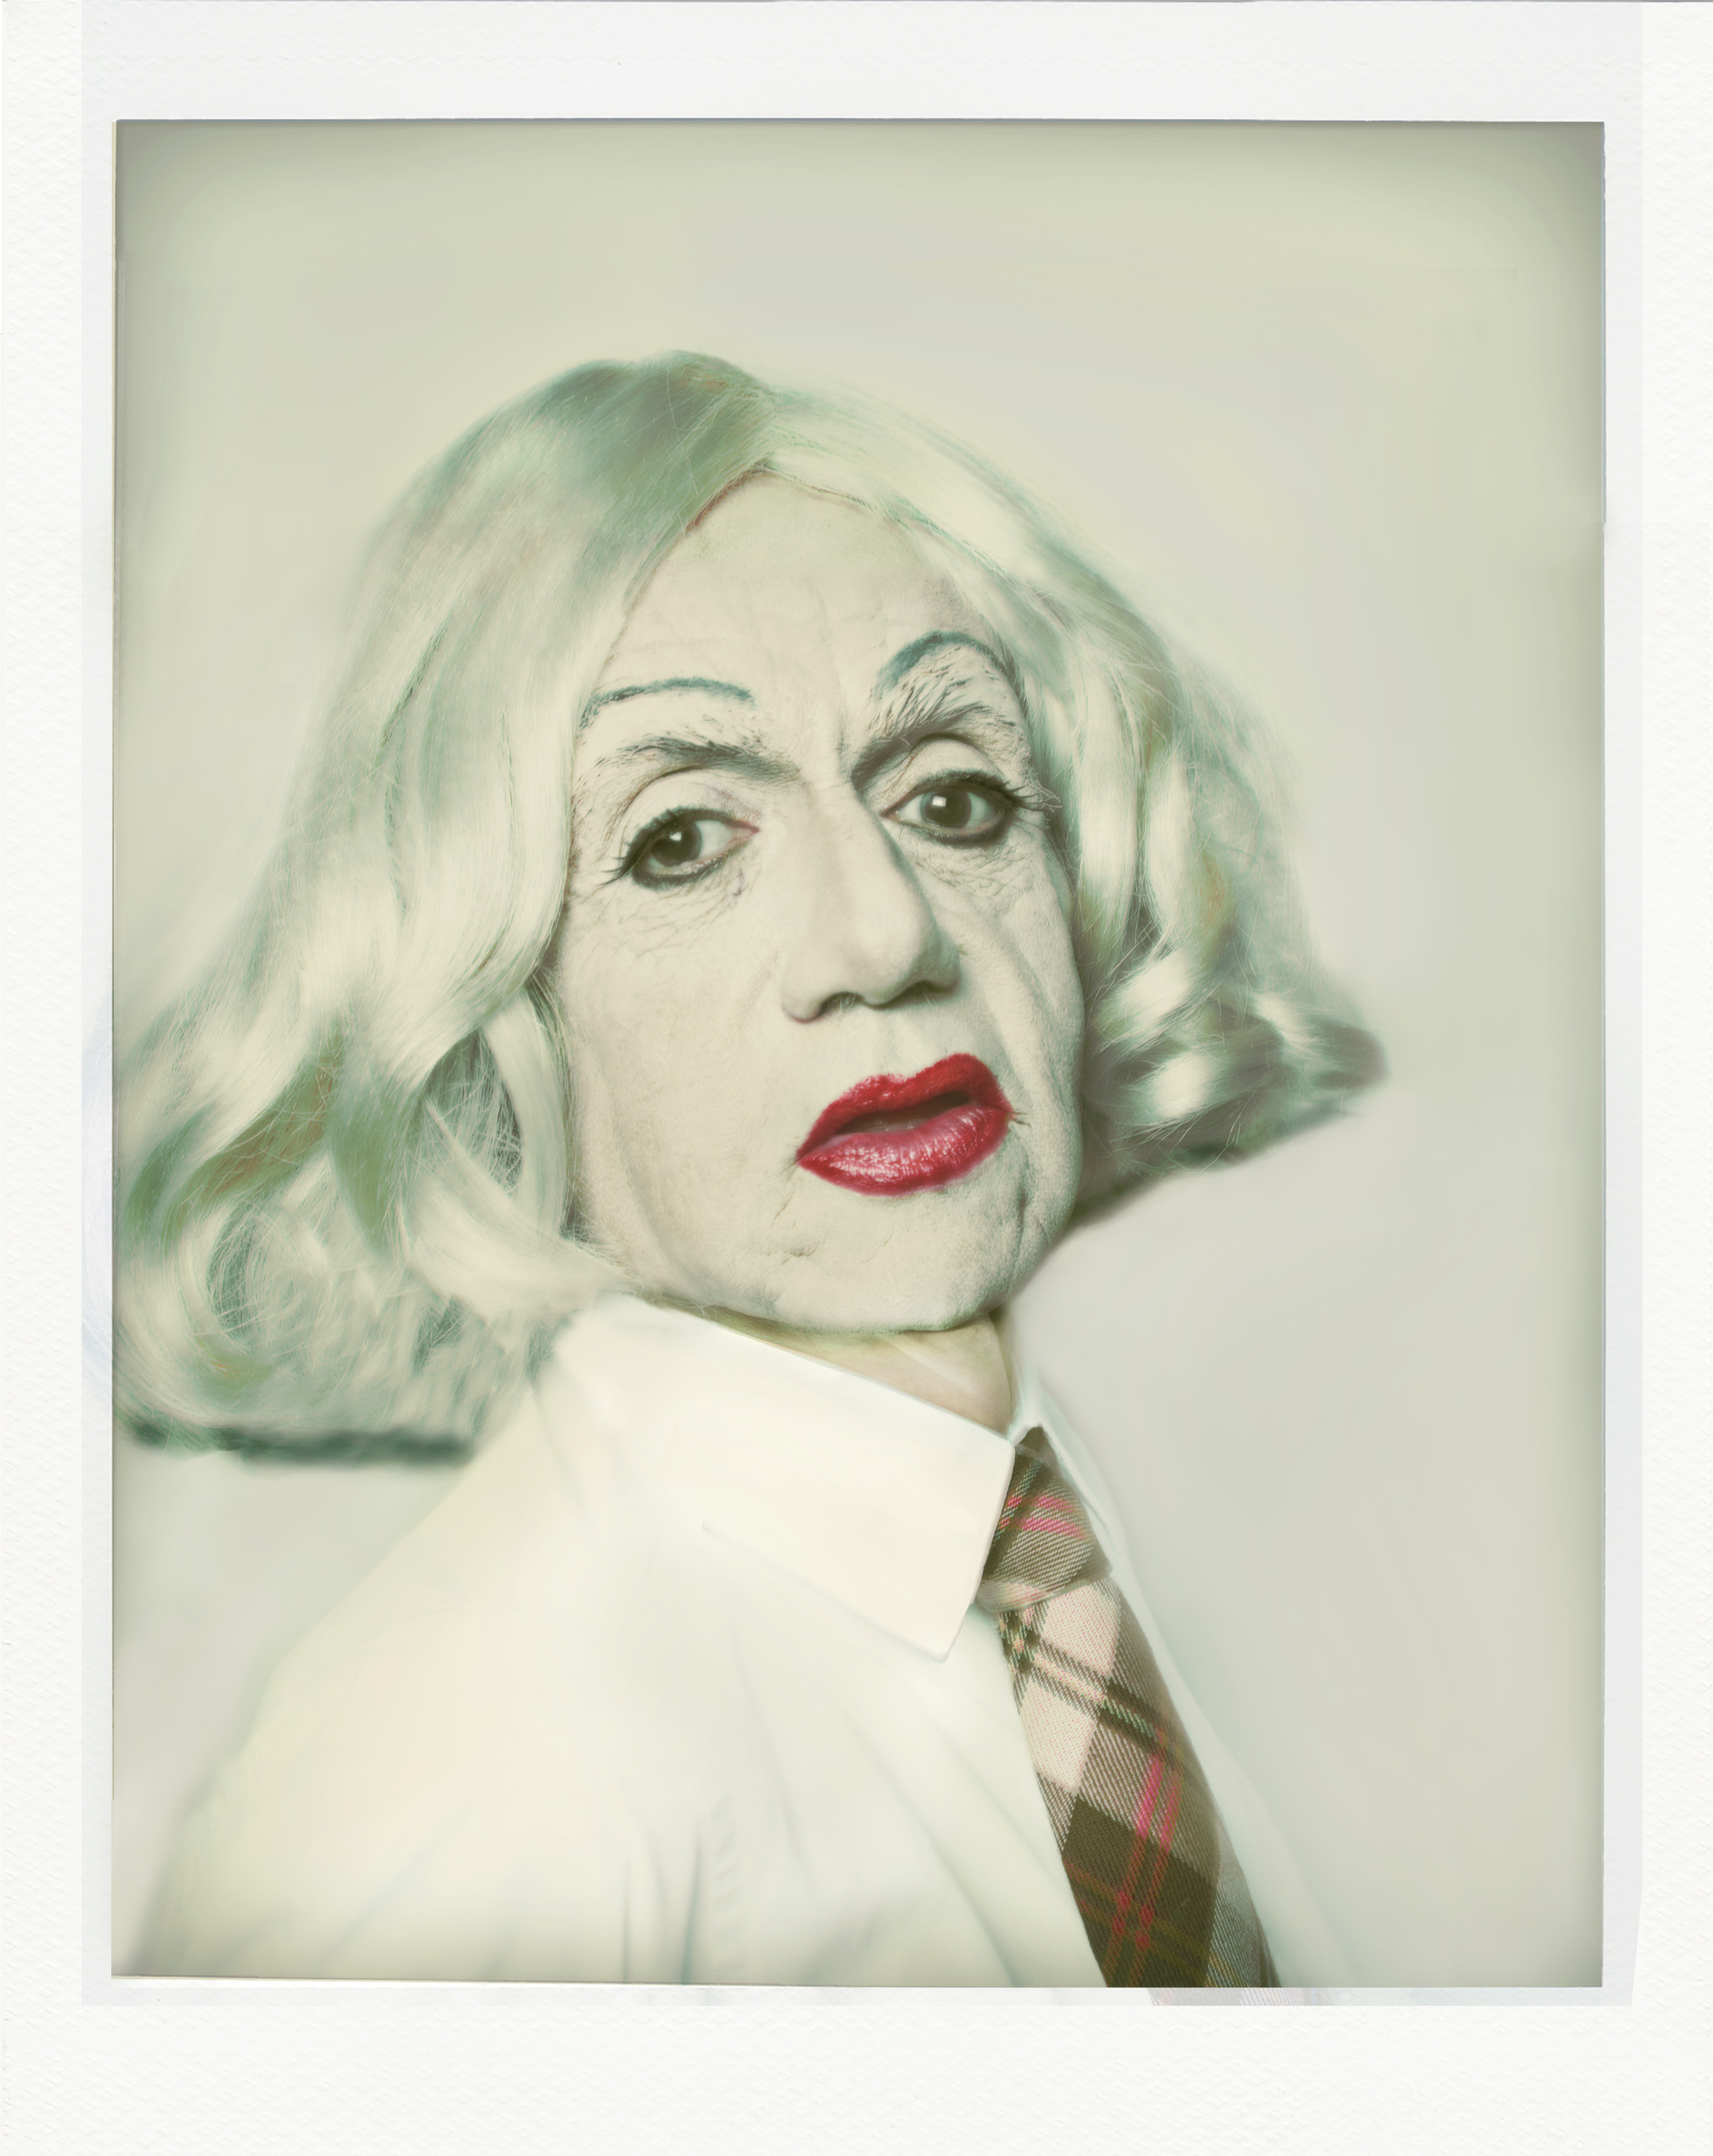 Hommage à Andy Warhol, Self-portrait in drag, Polaroïd, 1981, série Looking for the Masters in Ricardo's golden shoes © Catherine Balet, 2014. Courtesy galerie Thierry Bigaignon